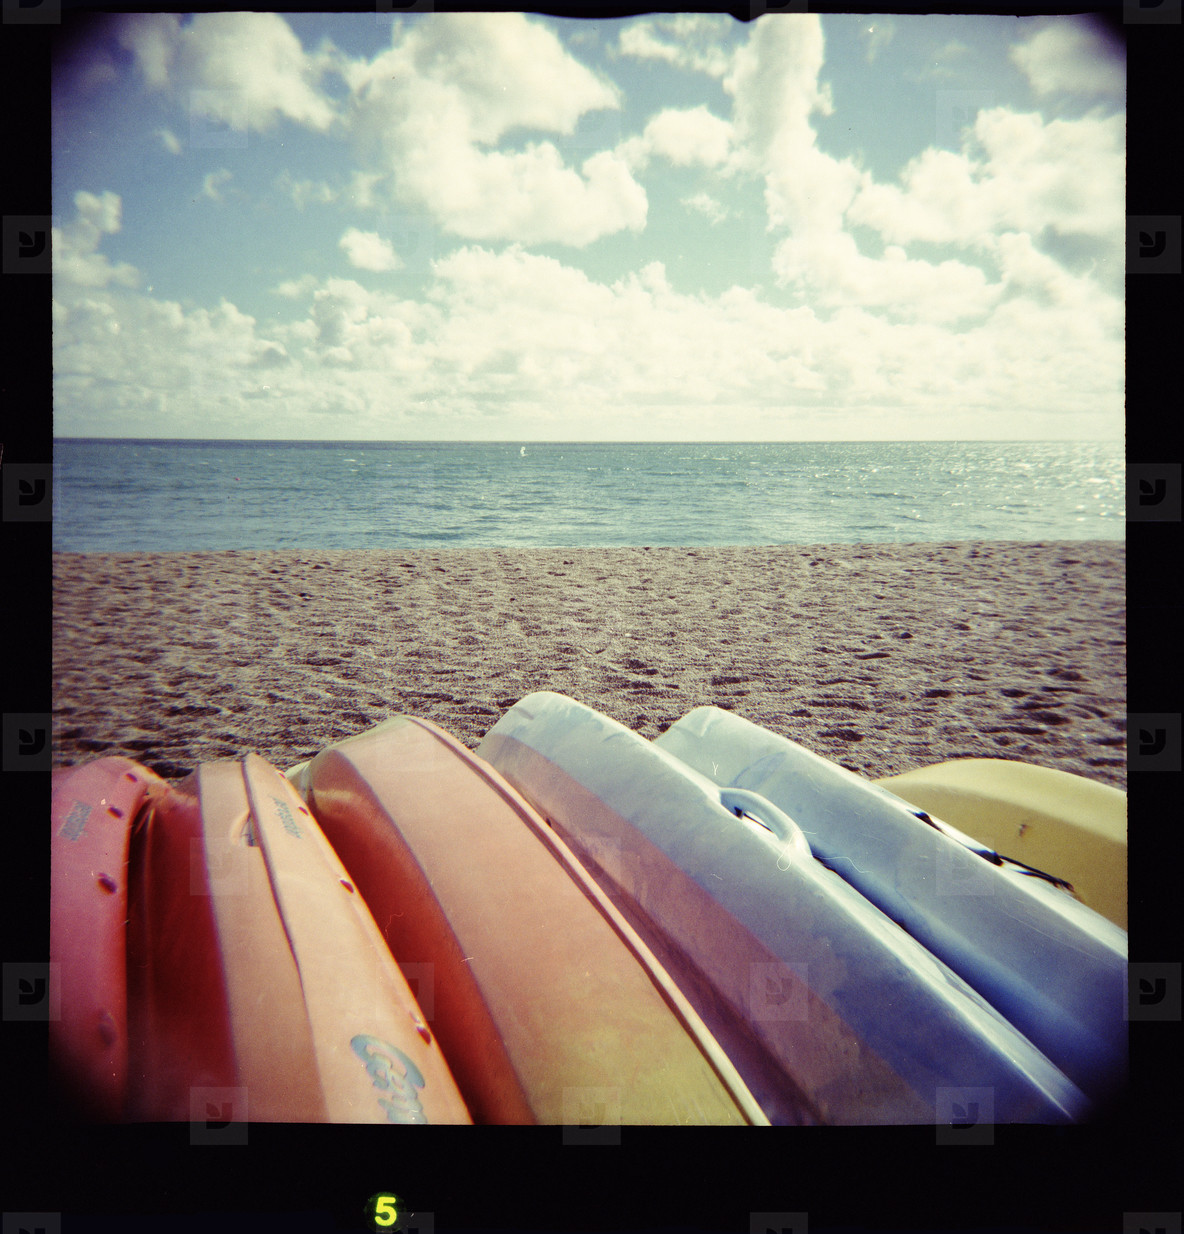 colourful boats on beach